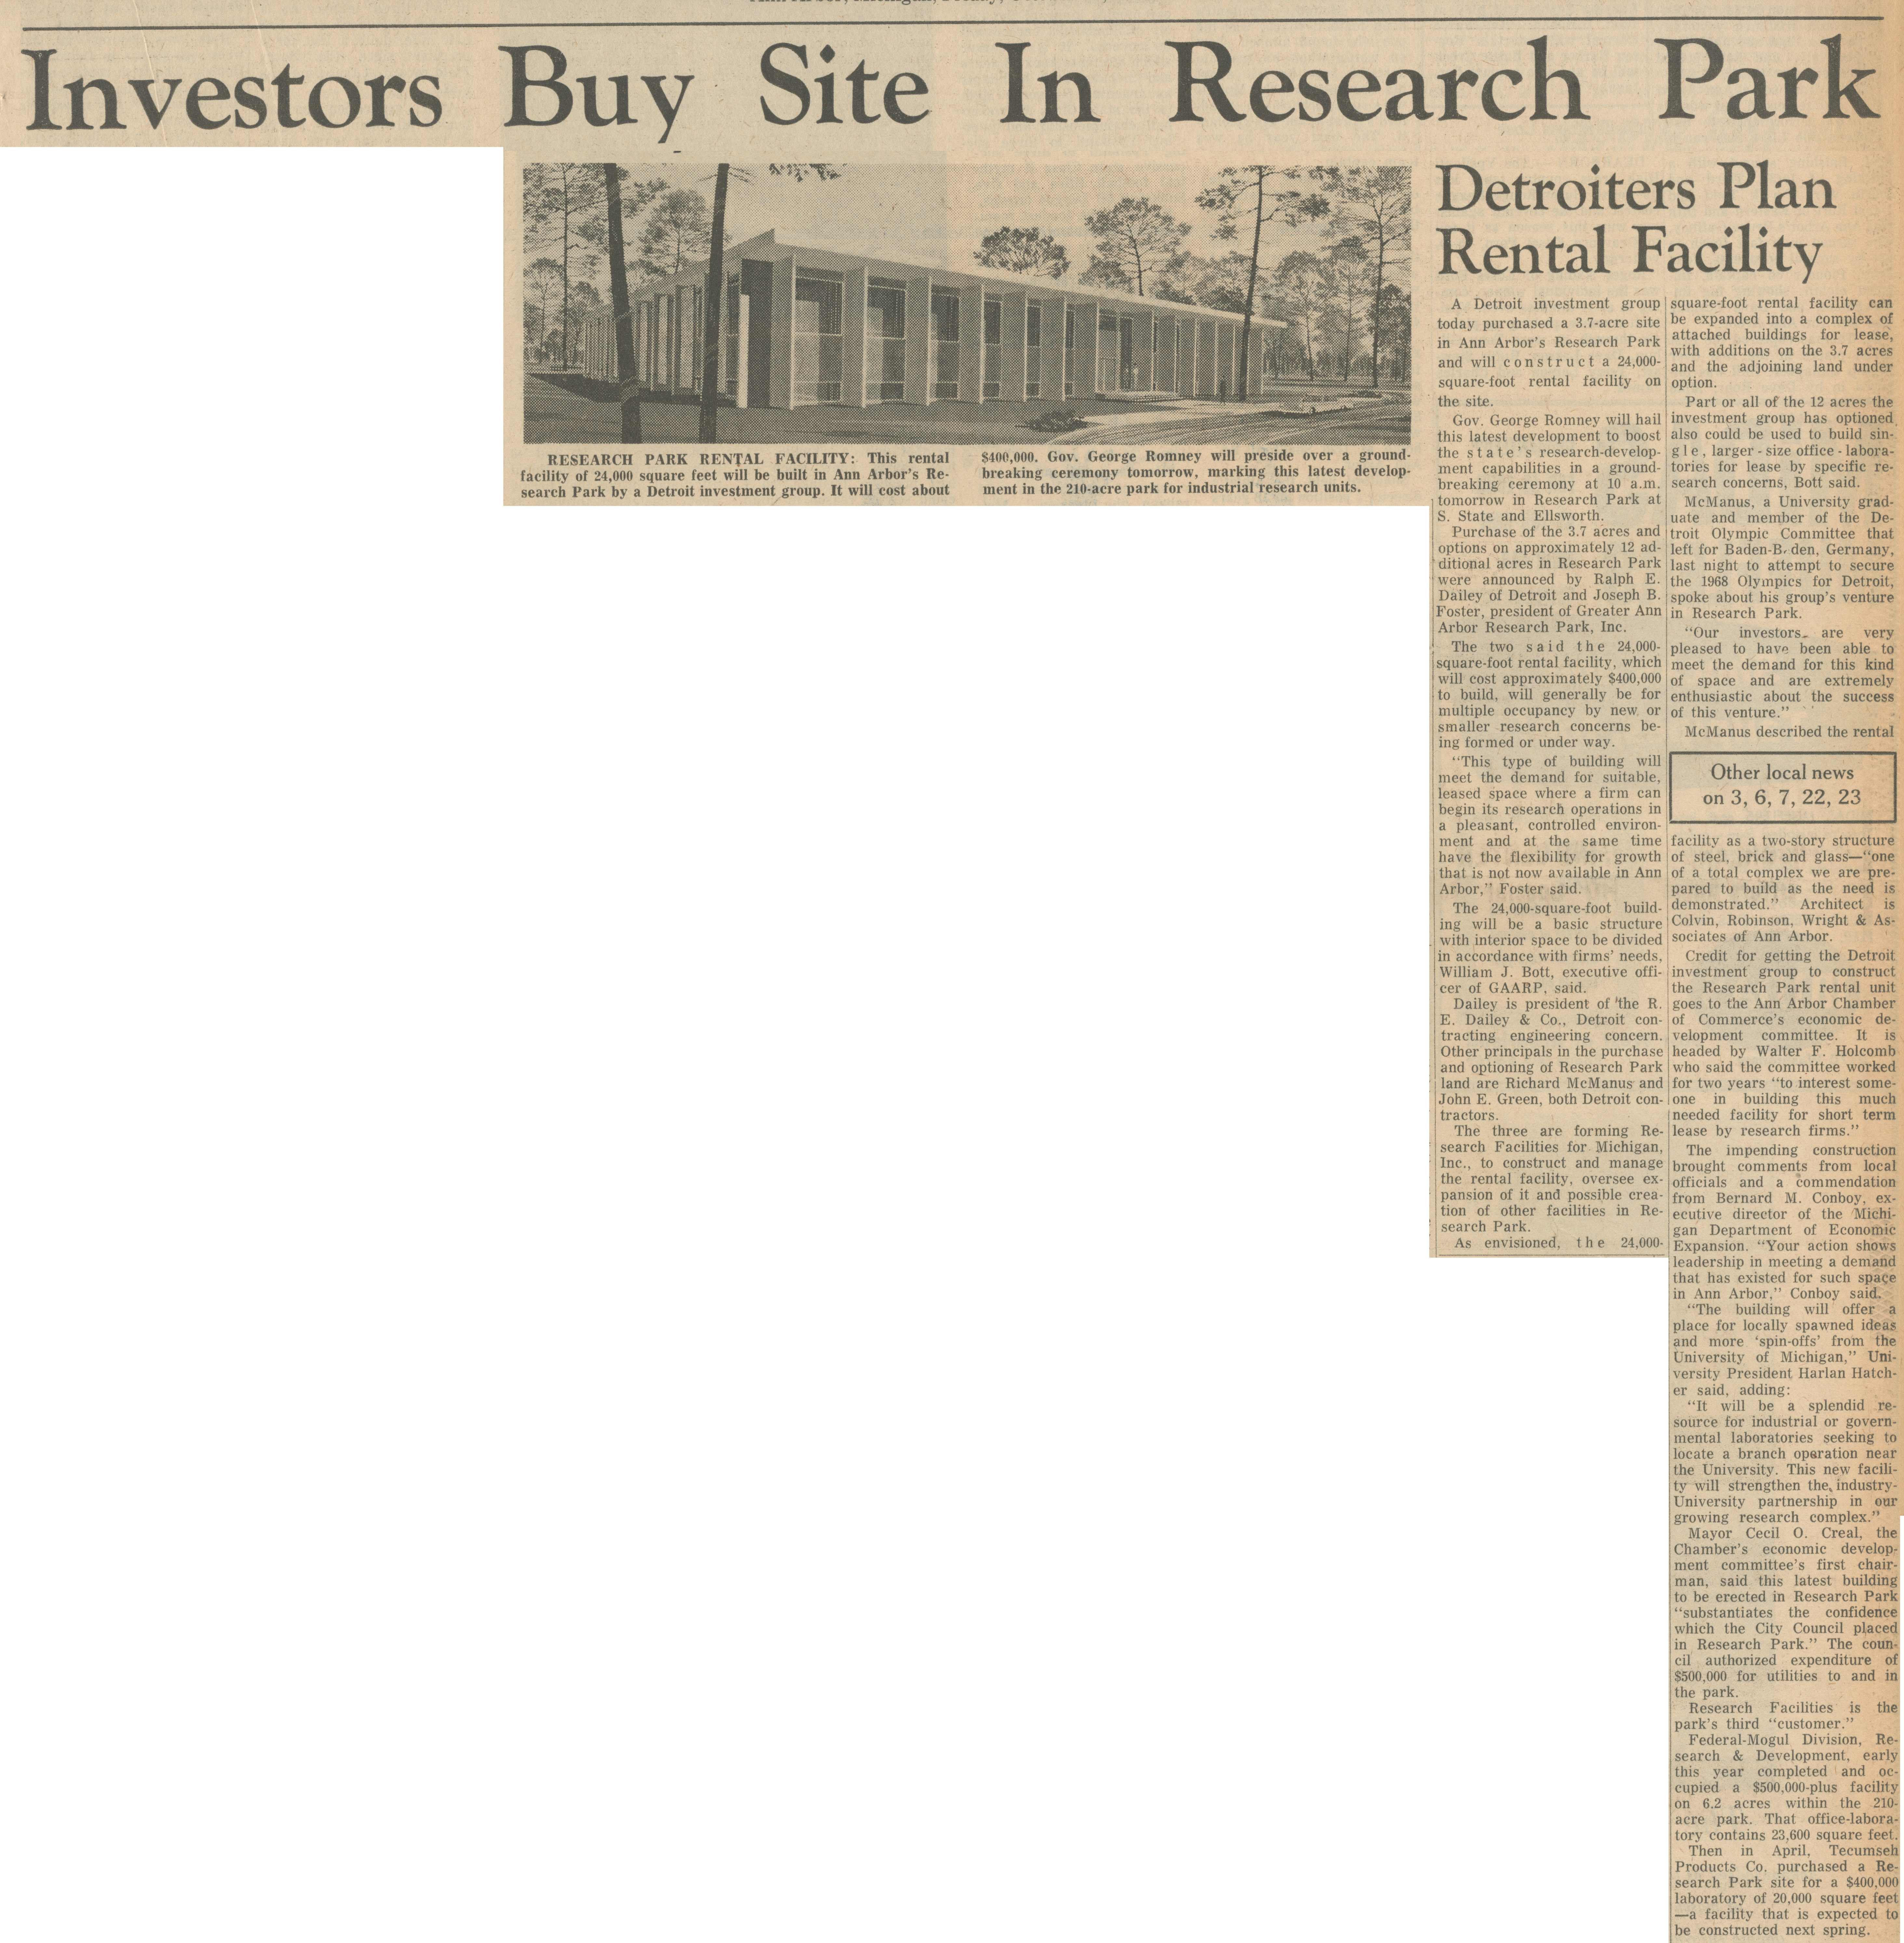 Investors Buy Site In Research Park image